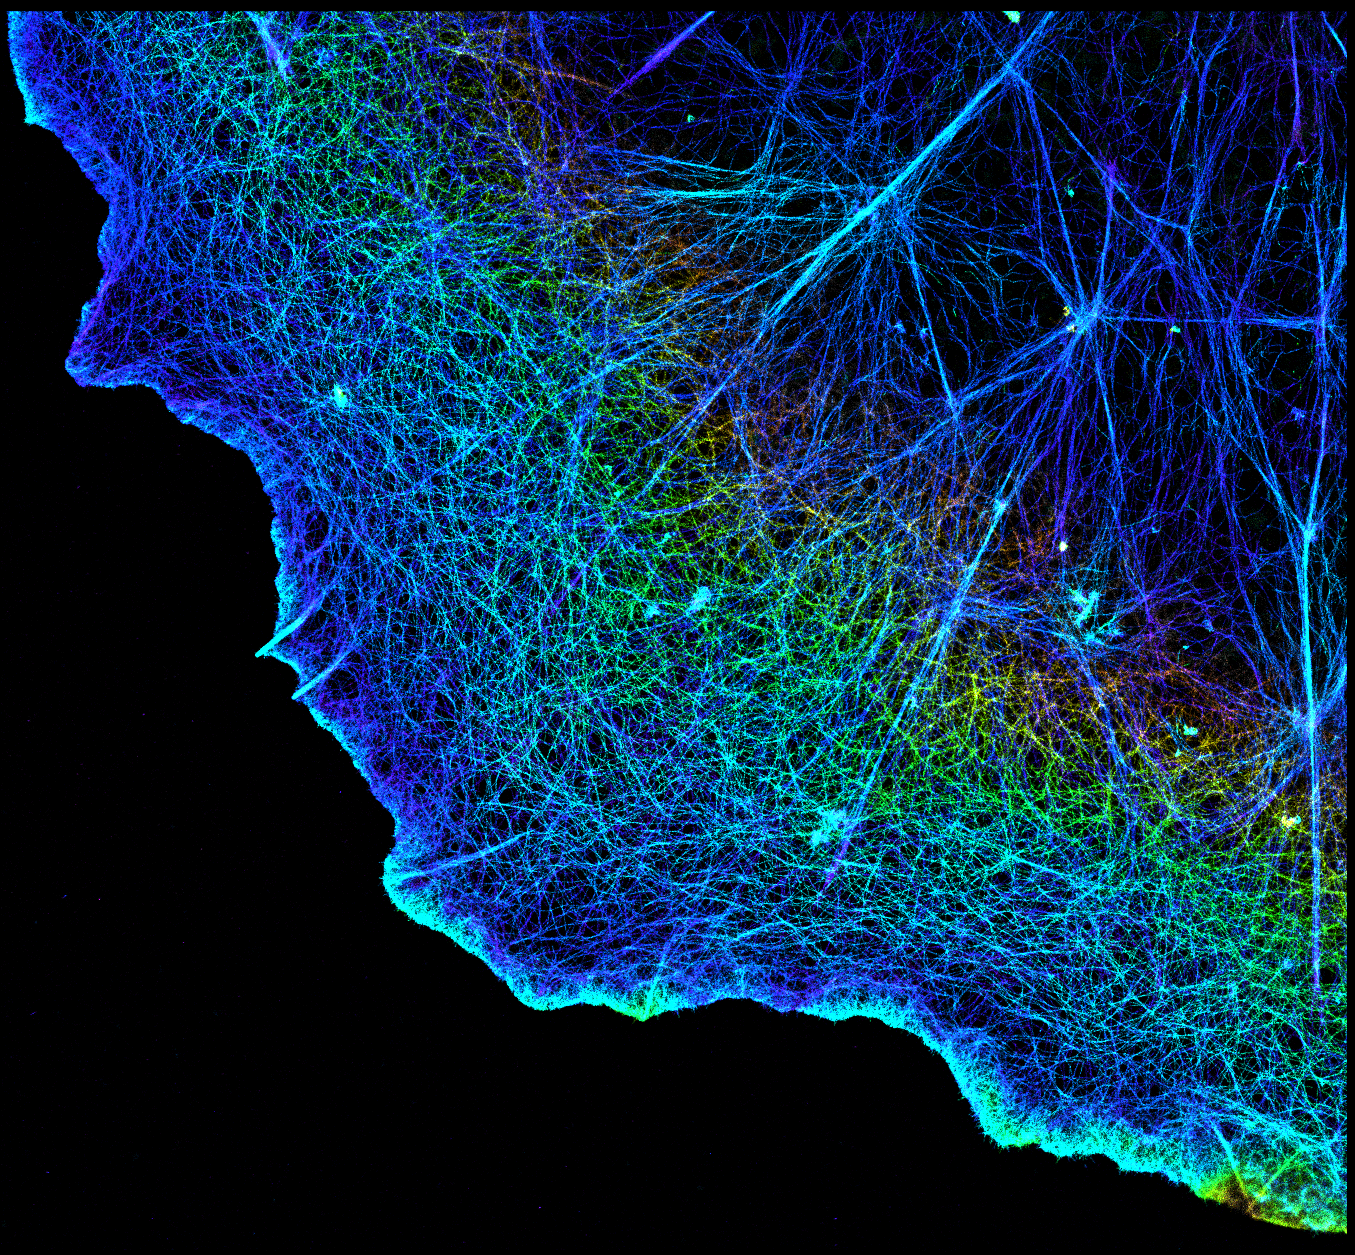 NIH Image gallery image - 3D image of actin in a cell